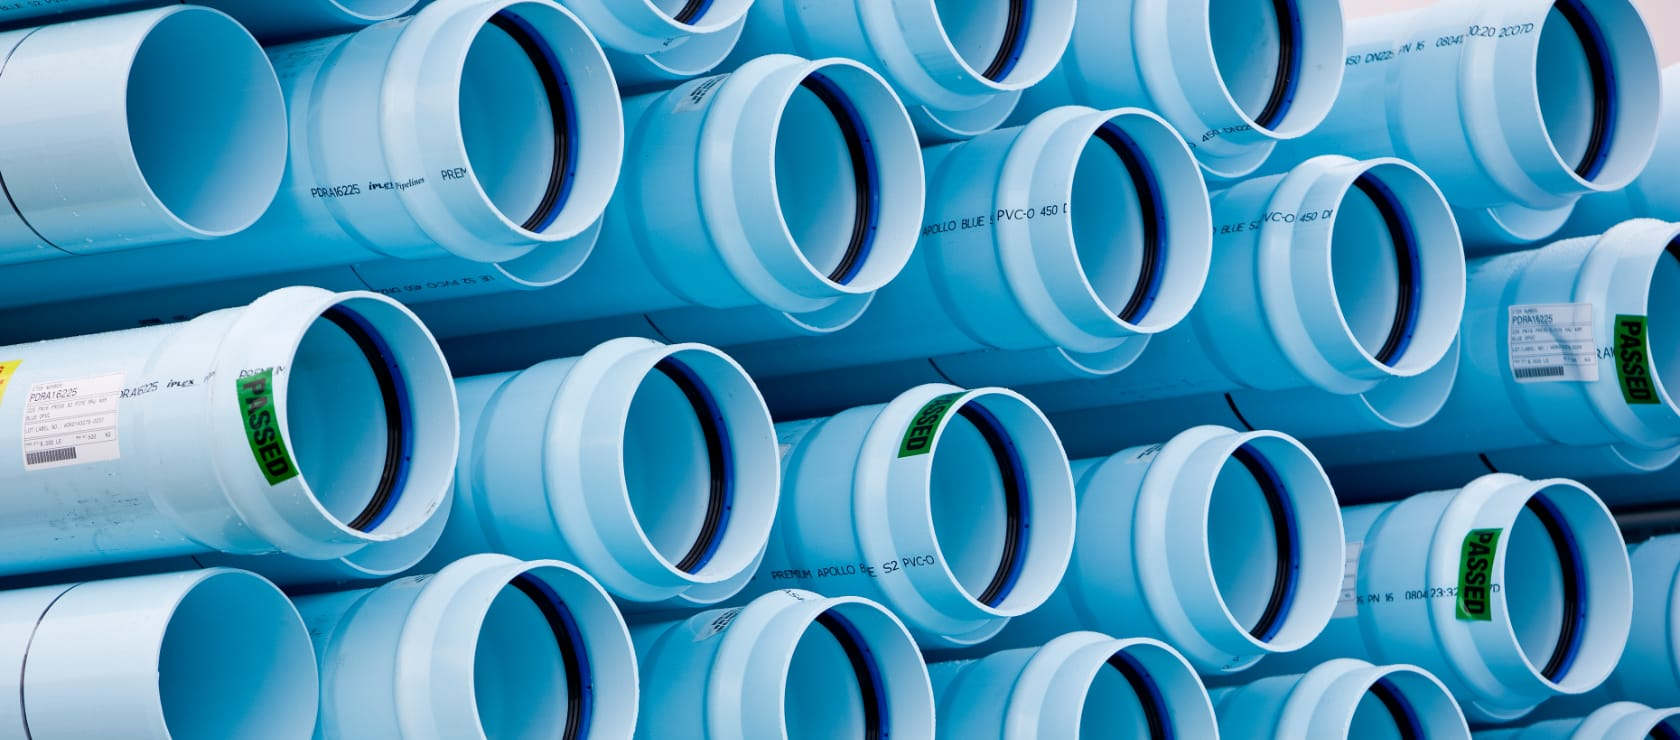 Supplying one of the largest PVC-O pipelines in the world